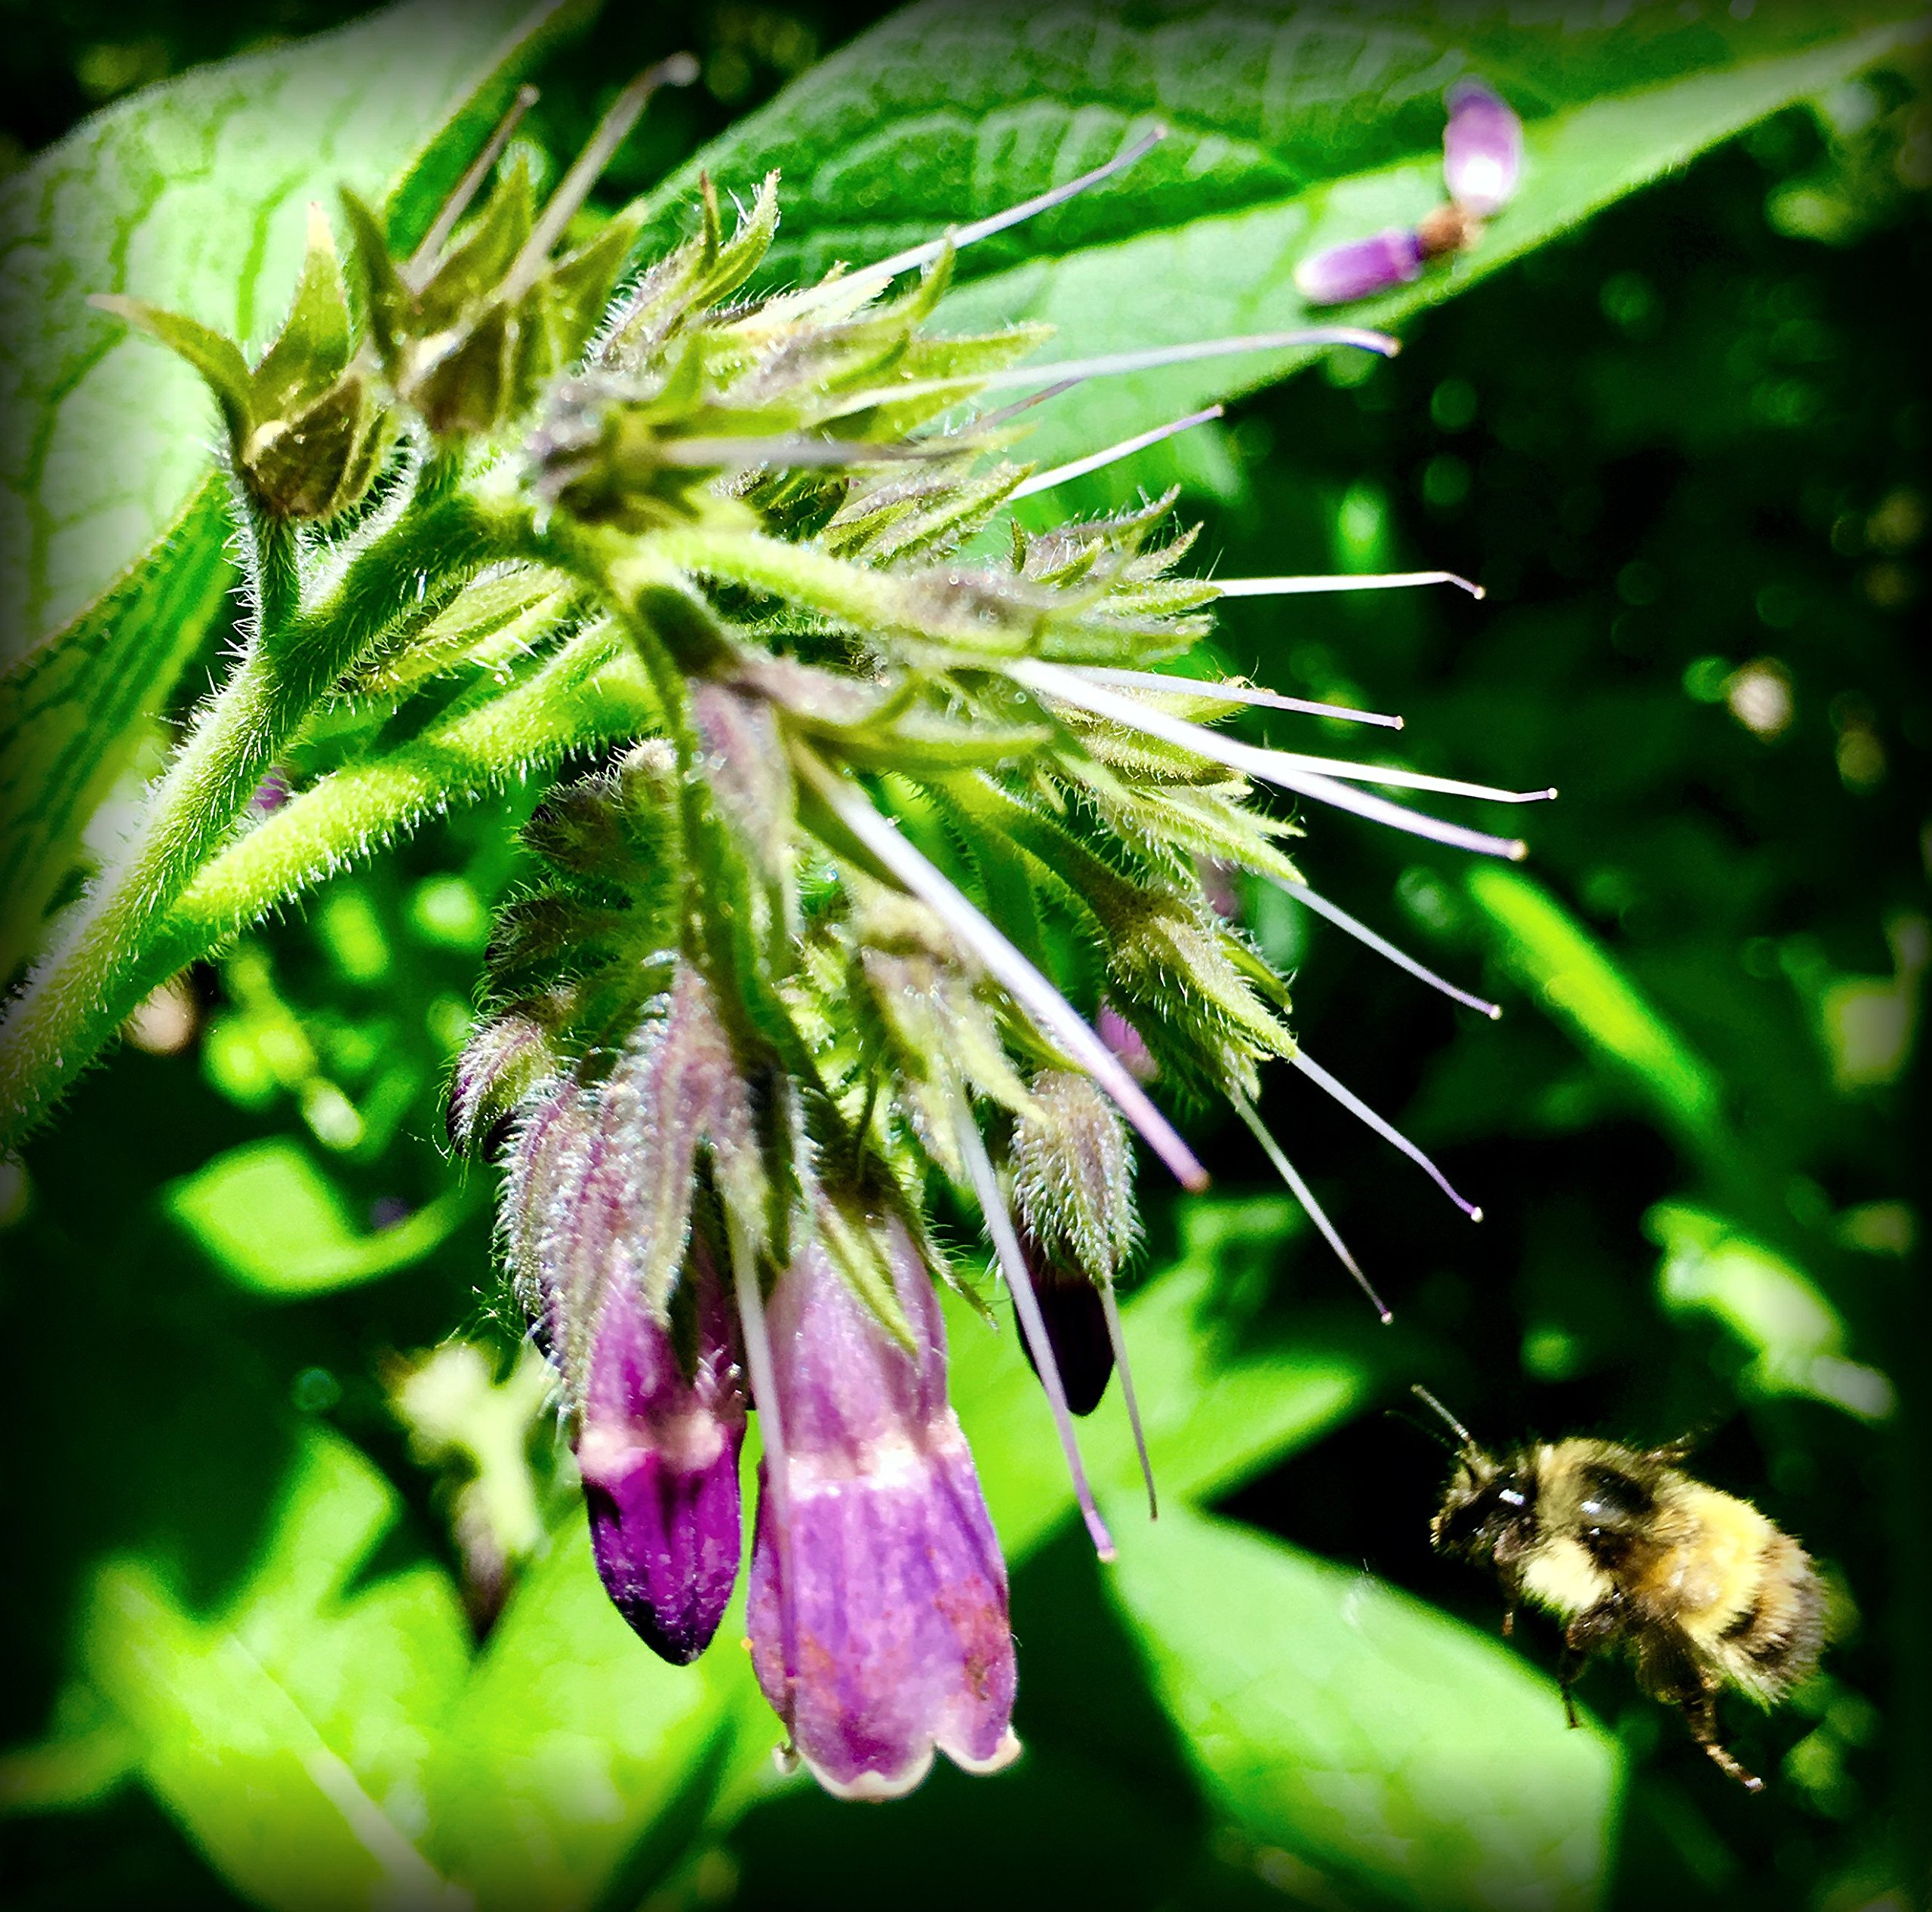 Russian Comfrey Bocking-14 Cultivar, 12 Cuttings for Growing Your Own Medicinal Salve, Compost Tea & Animal Fodder by Verdant Treasures